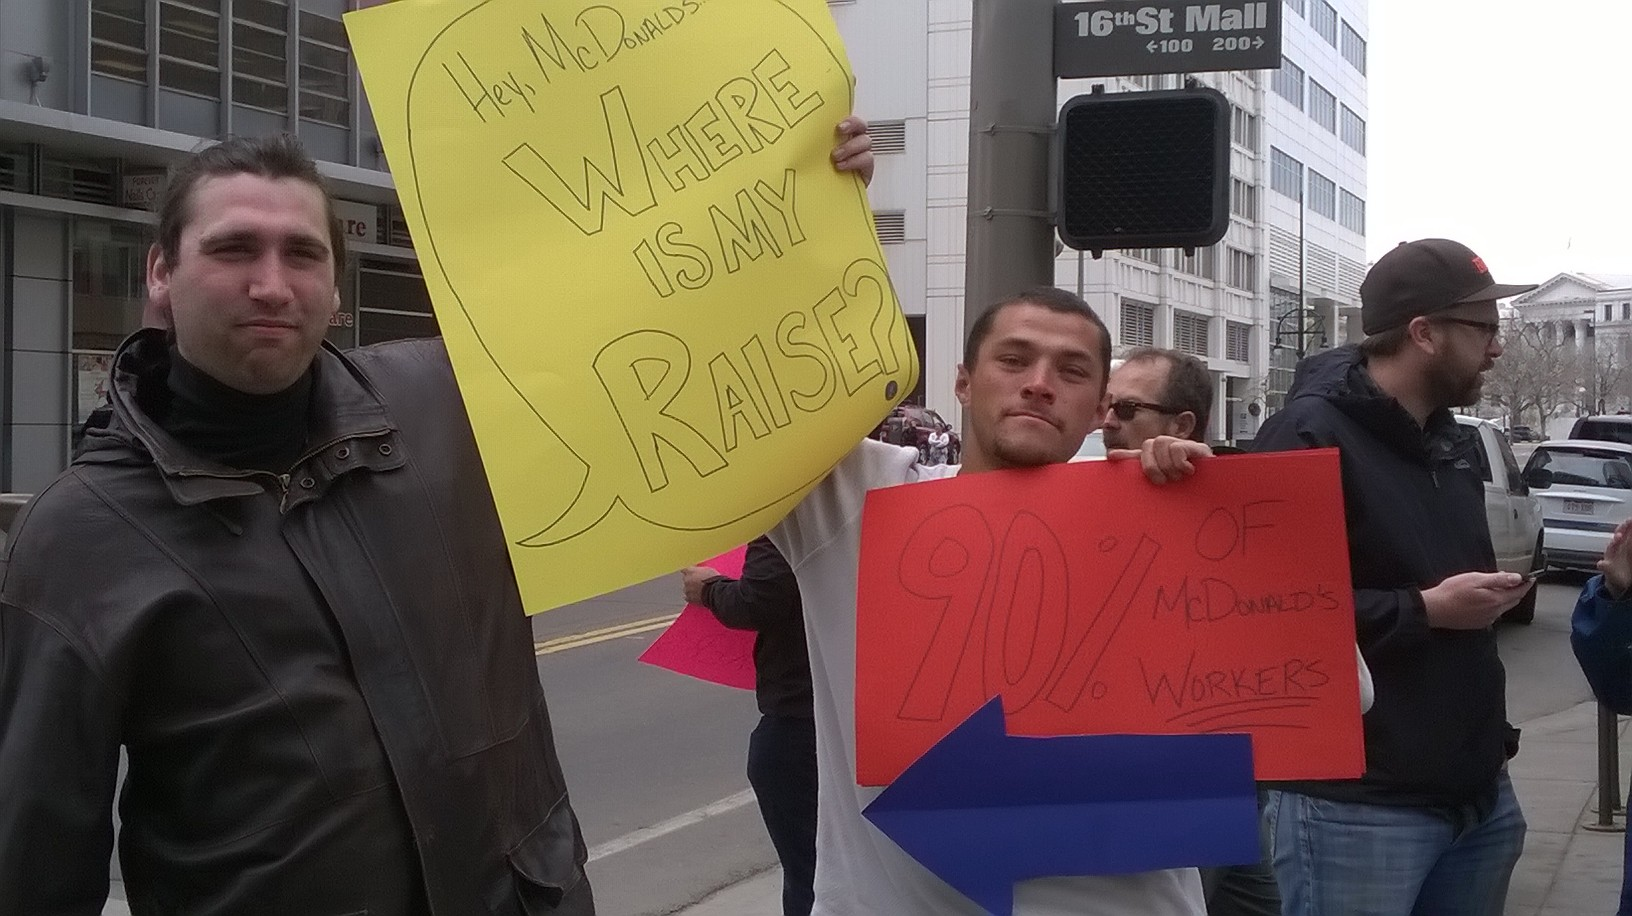 <p>Fast food workers Andrew Olson of Aurora and Patrick Ulibarri of Denver rallied for higher wages outside a downtown Denver McDonald's on April 2.</p>